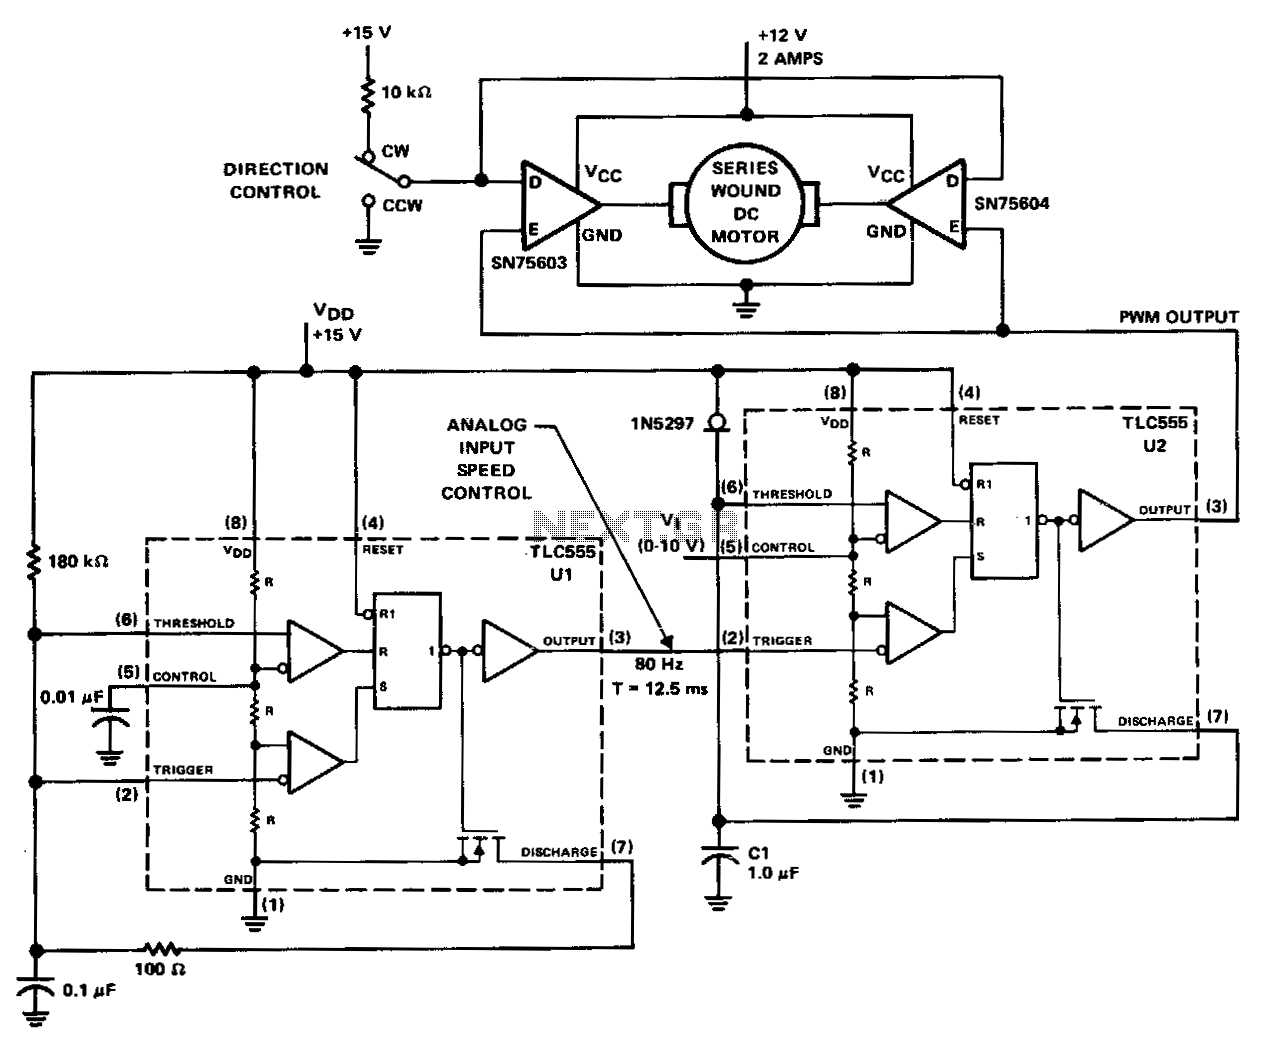 Quick view of Pwm-motor-controller